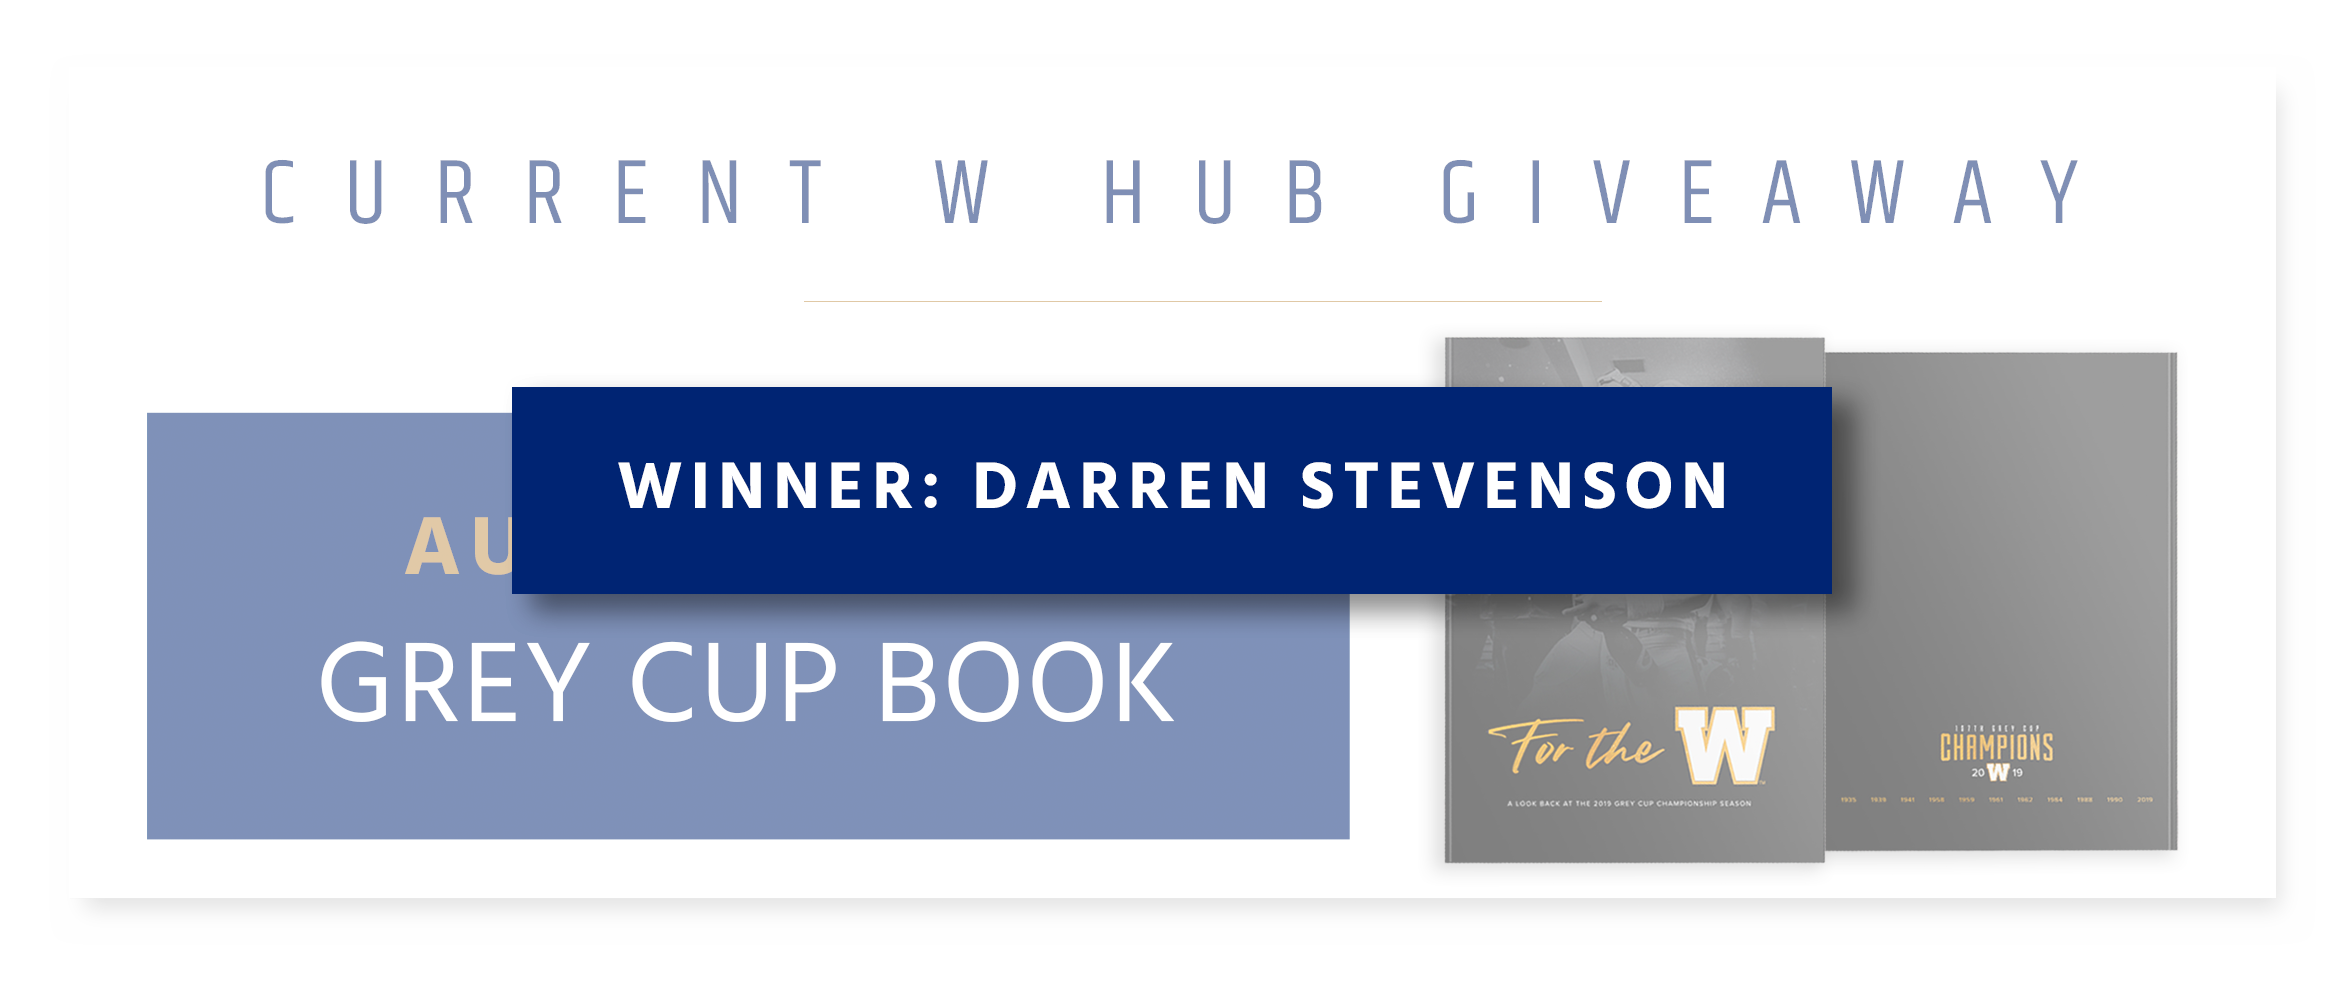 Monthly Giveaway - Autographed Grey Cup Book